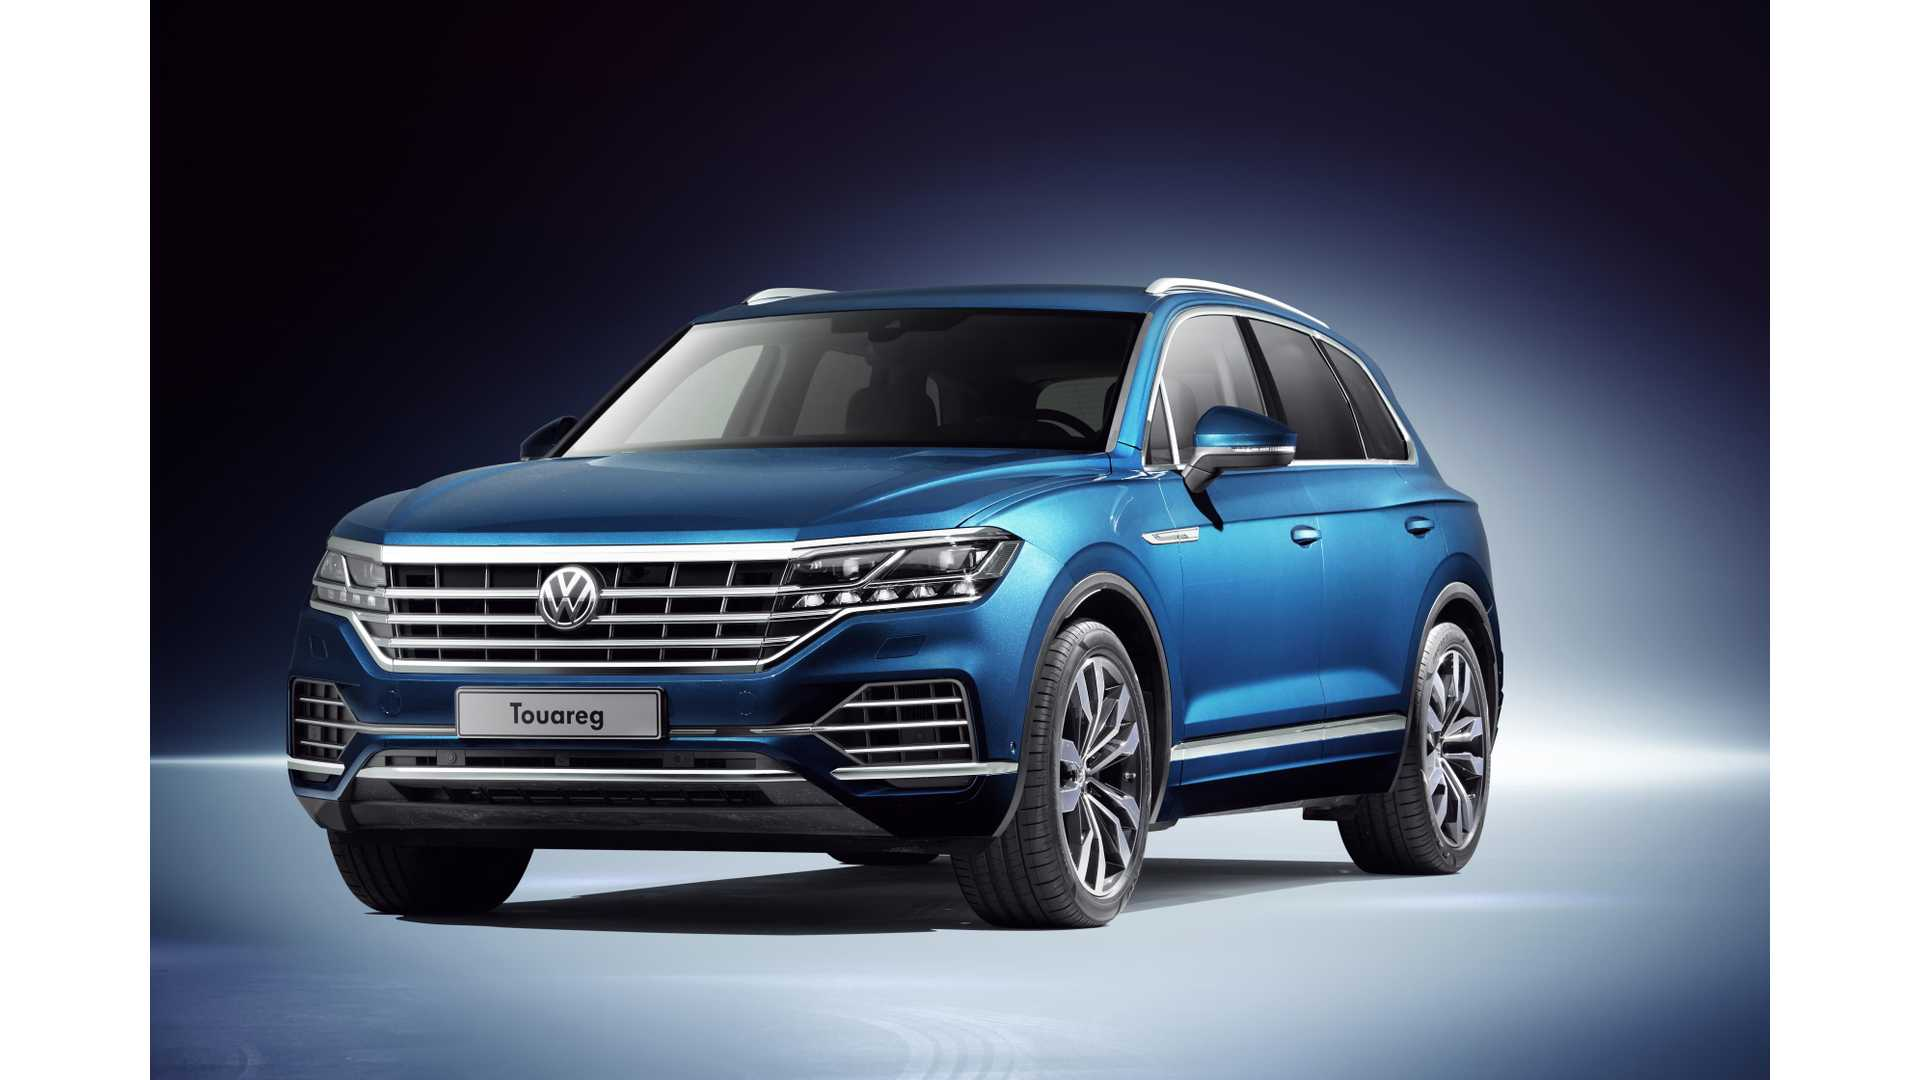 Meet The New Volkswagen Touareg Phev Coming This Year